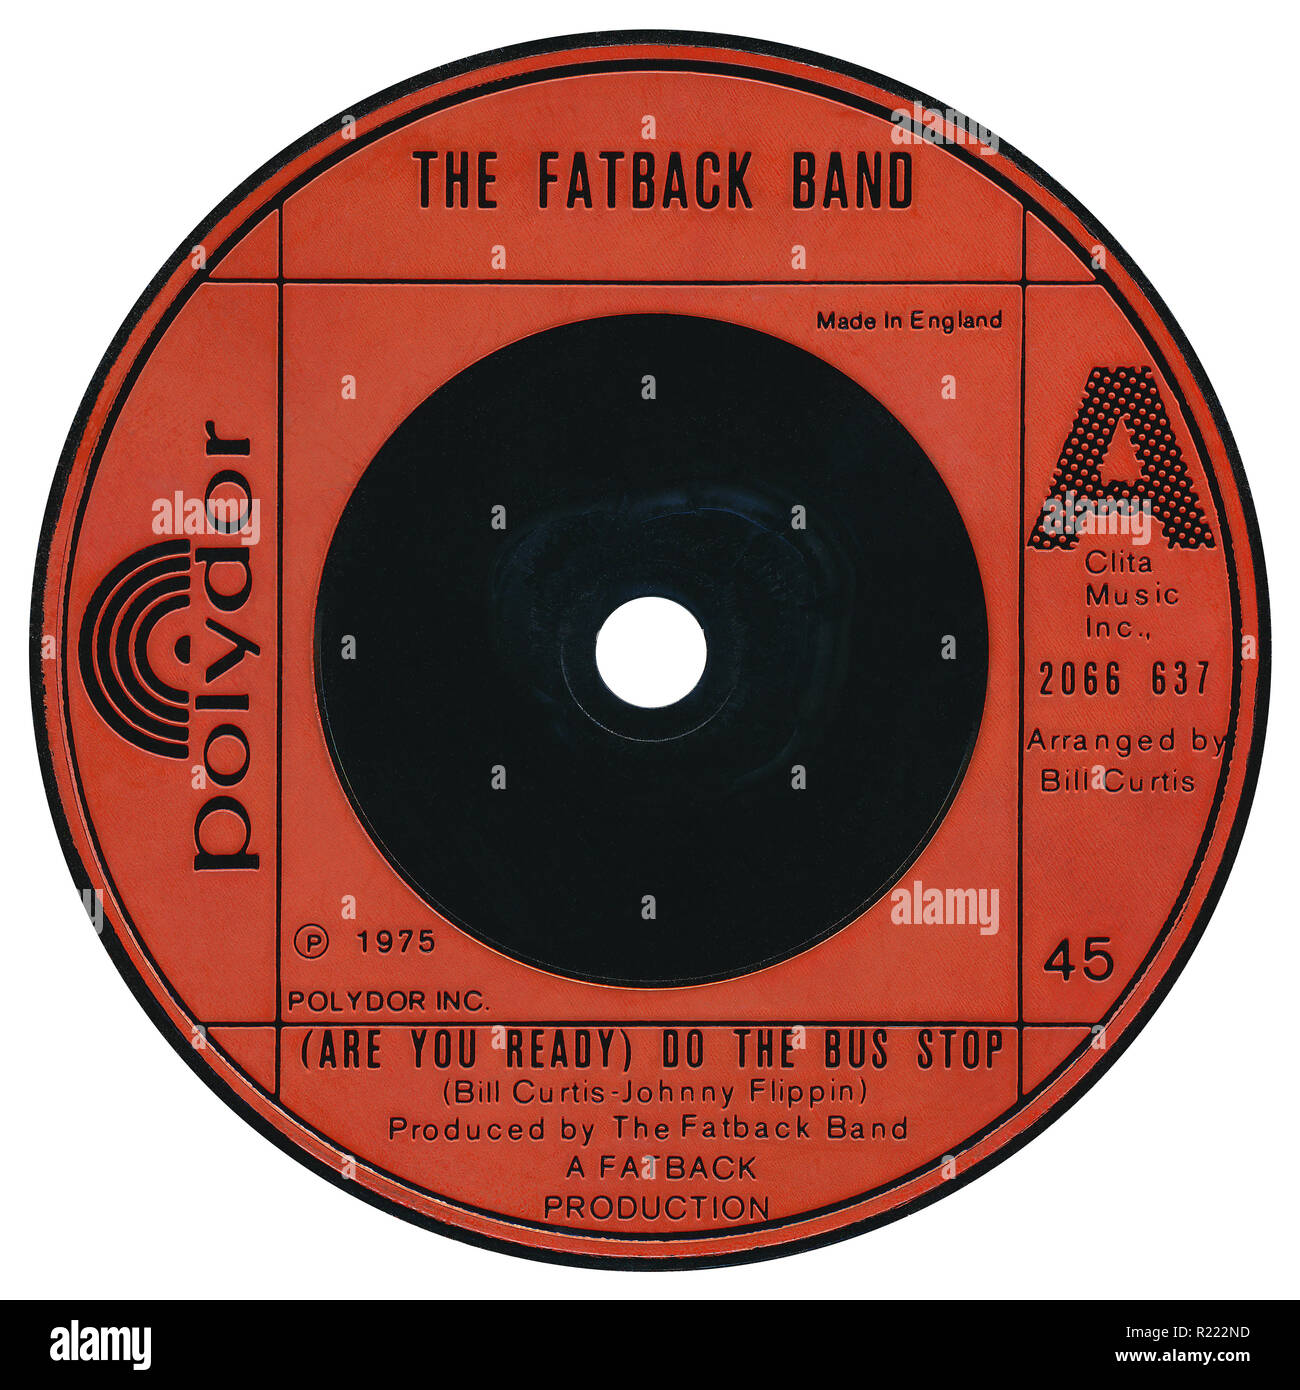 "UK 45 rpm 7"" single of (Are You Ready) Do The Bus Stop by The Fatback Band on Polydor Records from 1975. Written by Bill Curtis and Johnny Flippin, arranged by Bill Curtis and produced by The Fatback Band. Stock Photo"